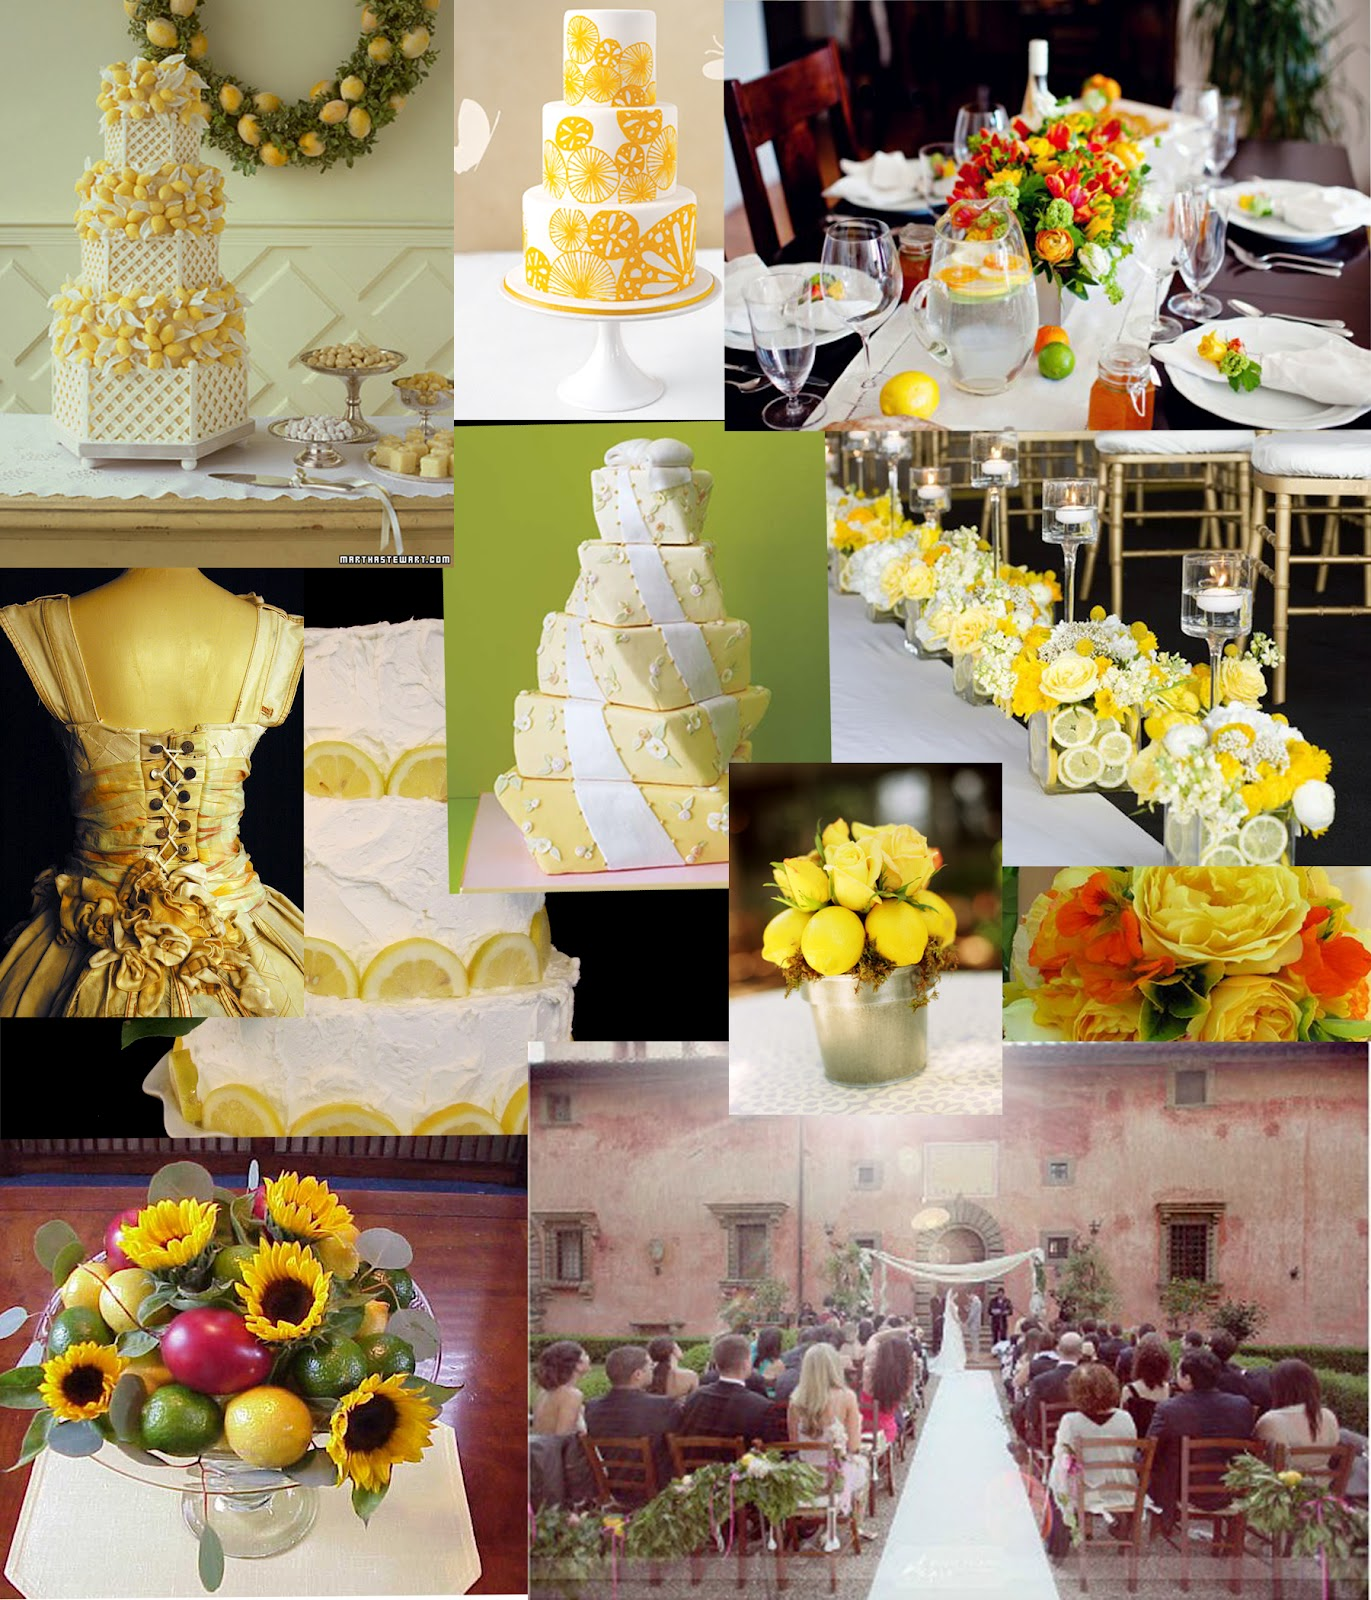 Weddingzilla: Lemon Wedding Theme JUICY Summer Wedding Ideas